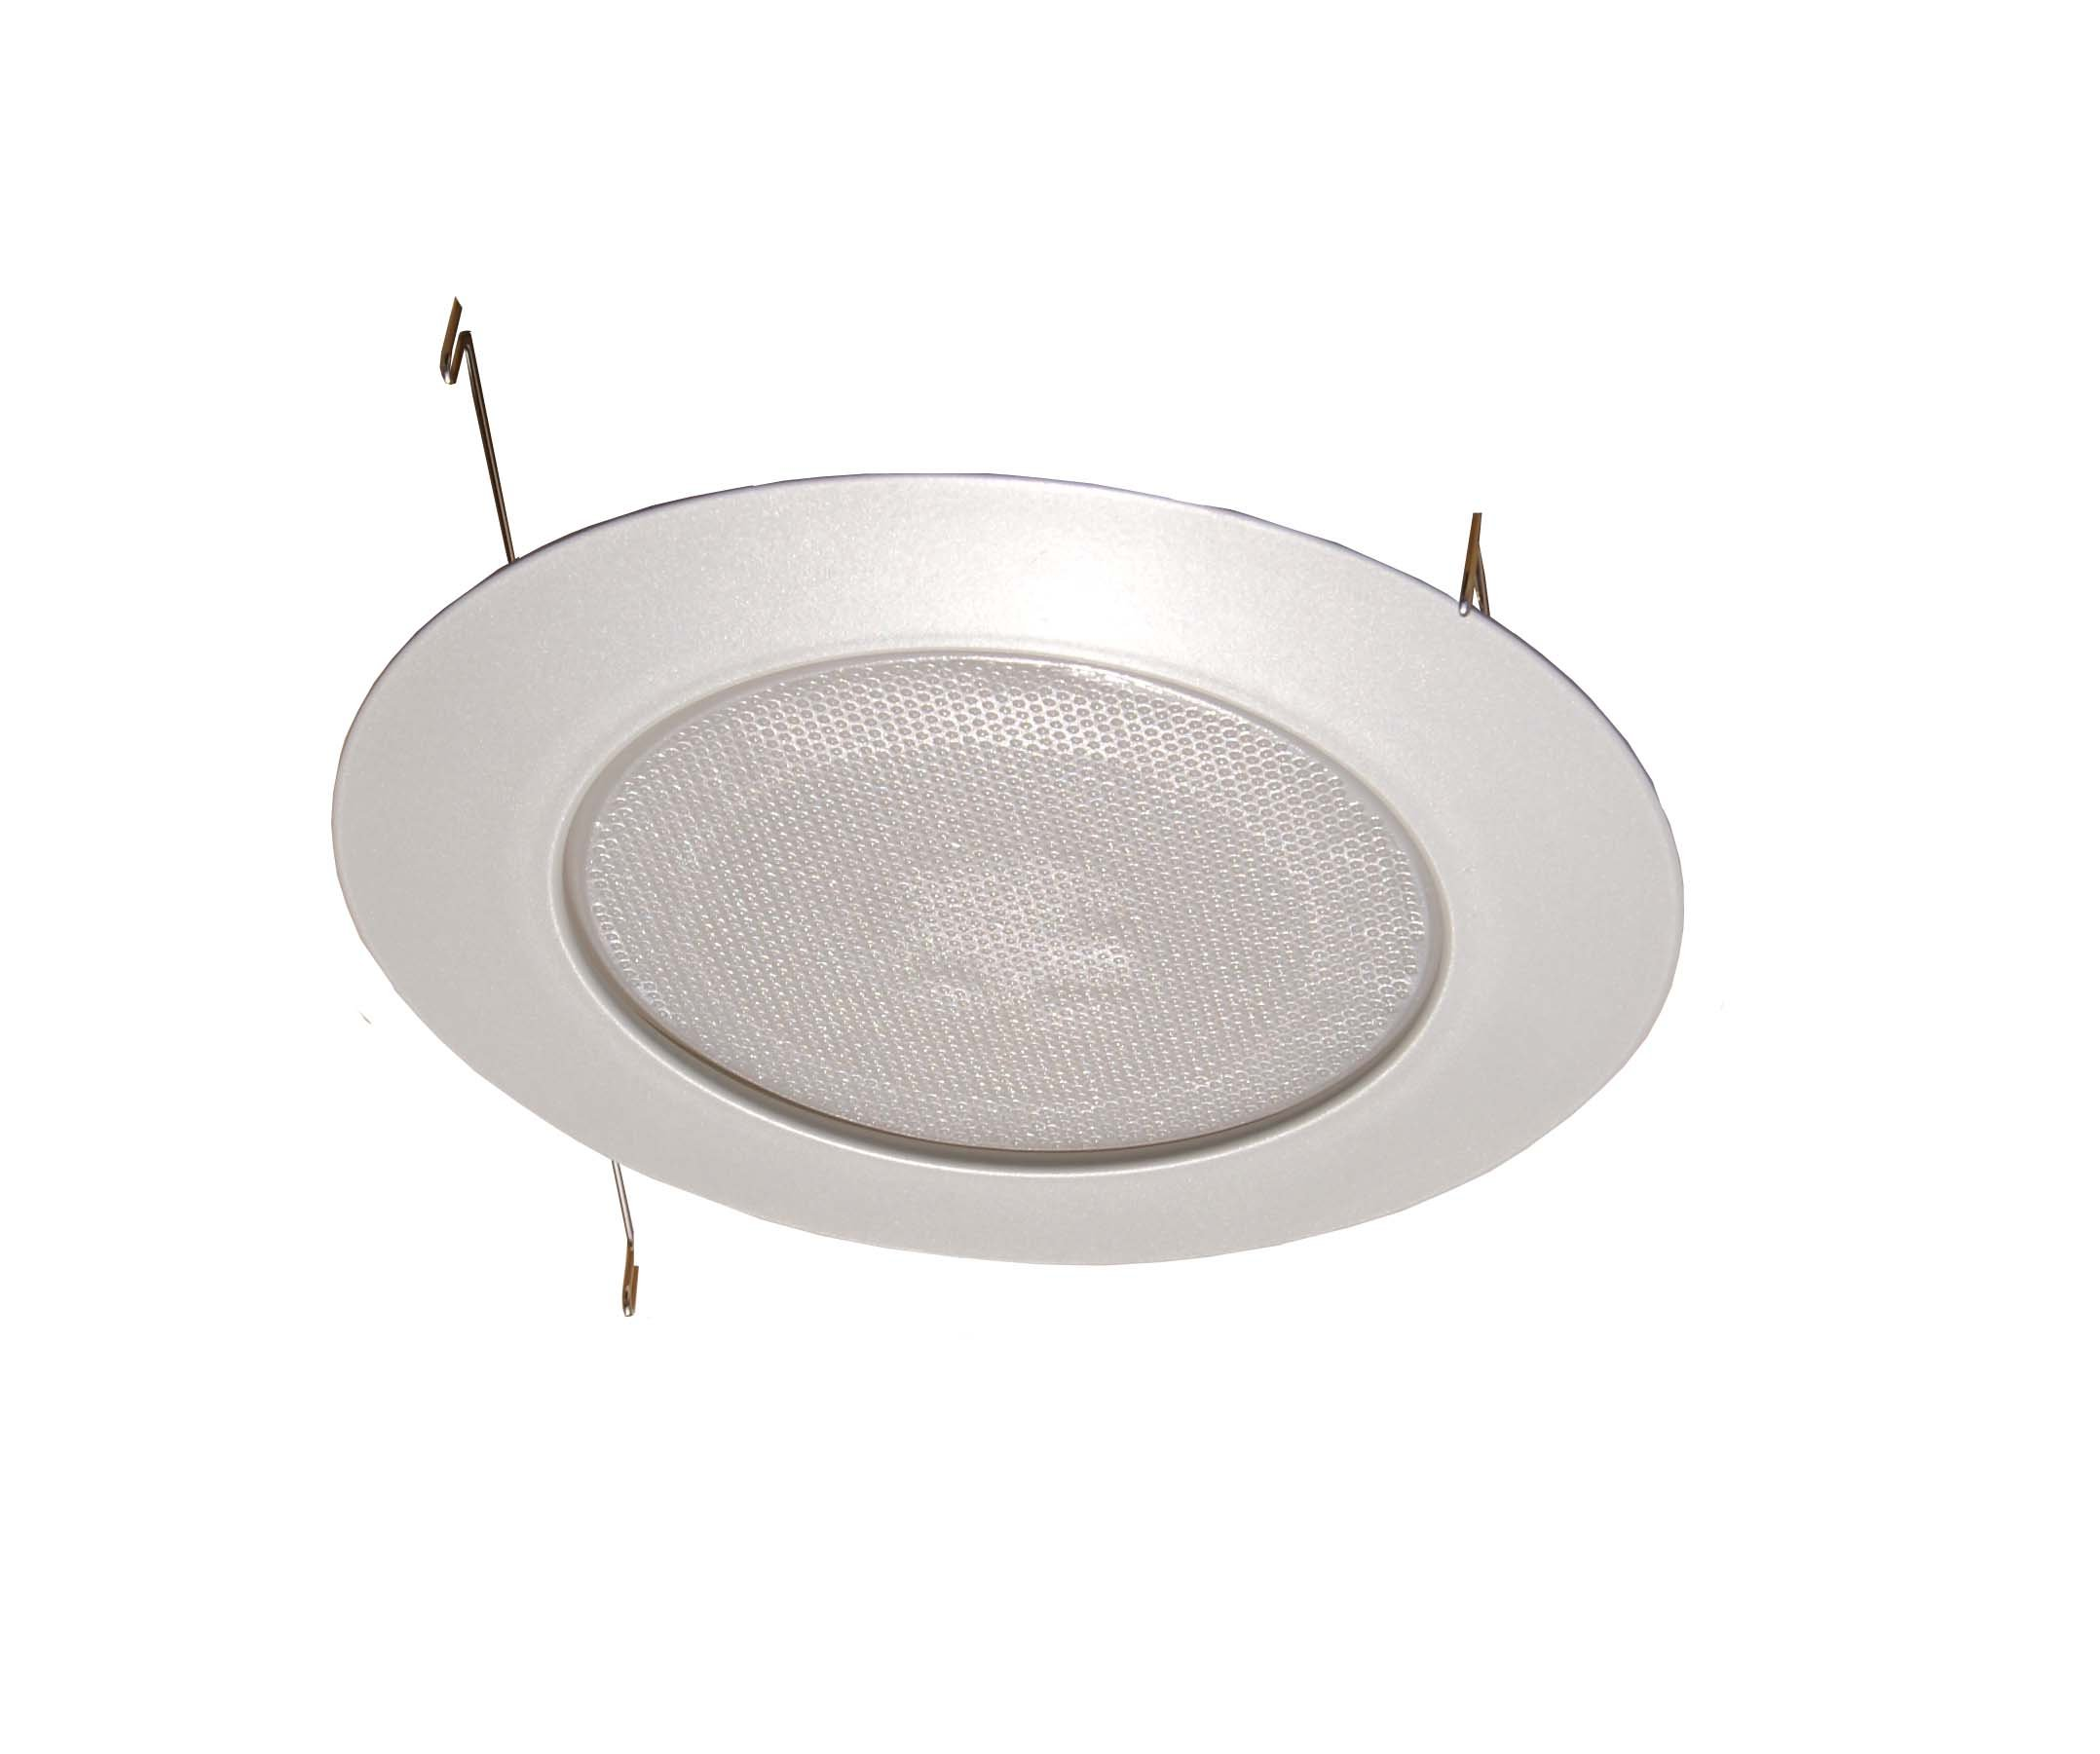 6 Inches Albalite Lens Shower Trim for Recessed Light/Lighting